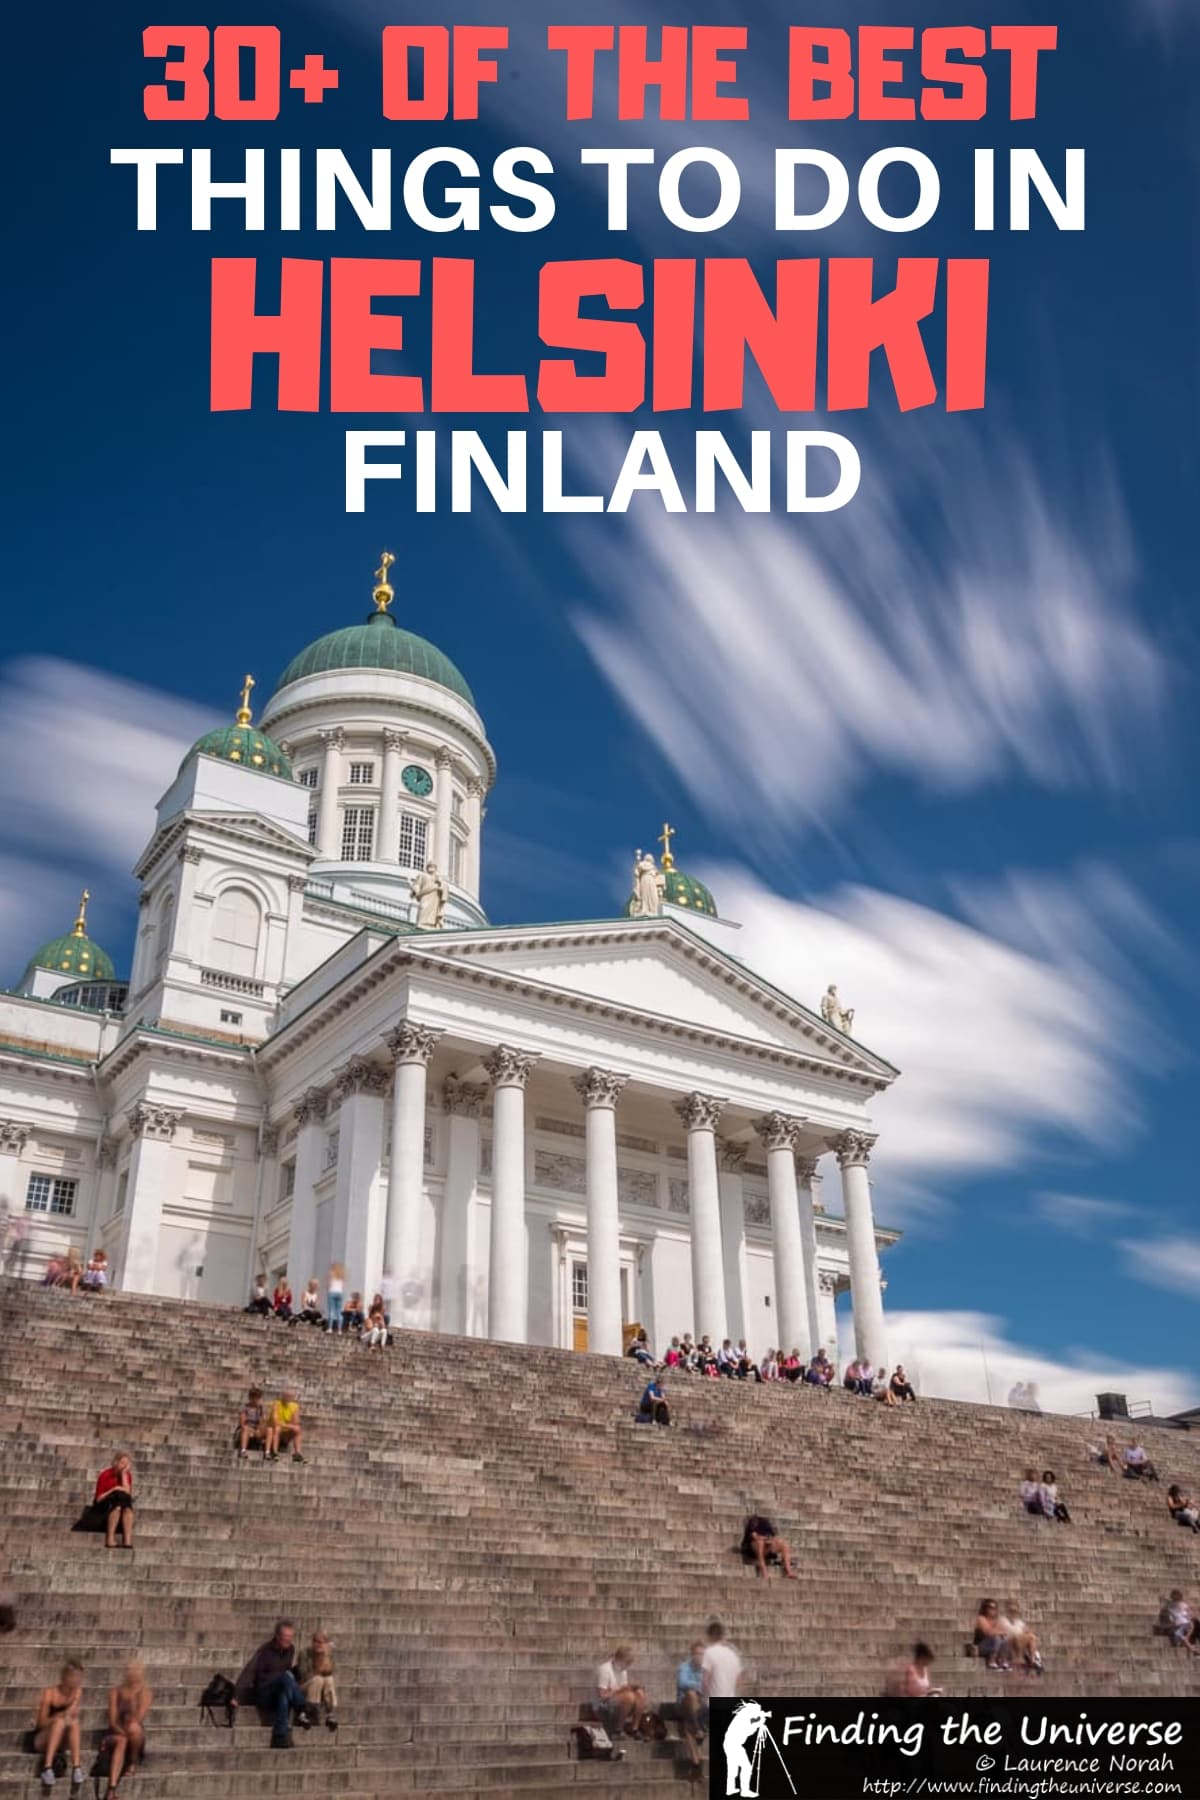 A detailed guide to all the best things to do in Helsinki. Whether you are visiting Helsinki in winter or summer, this guide has everything you need! #finland #helsinki #travel